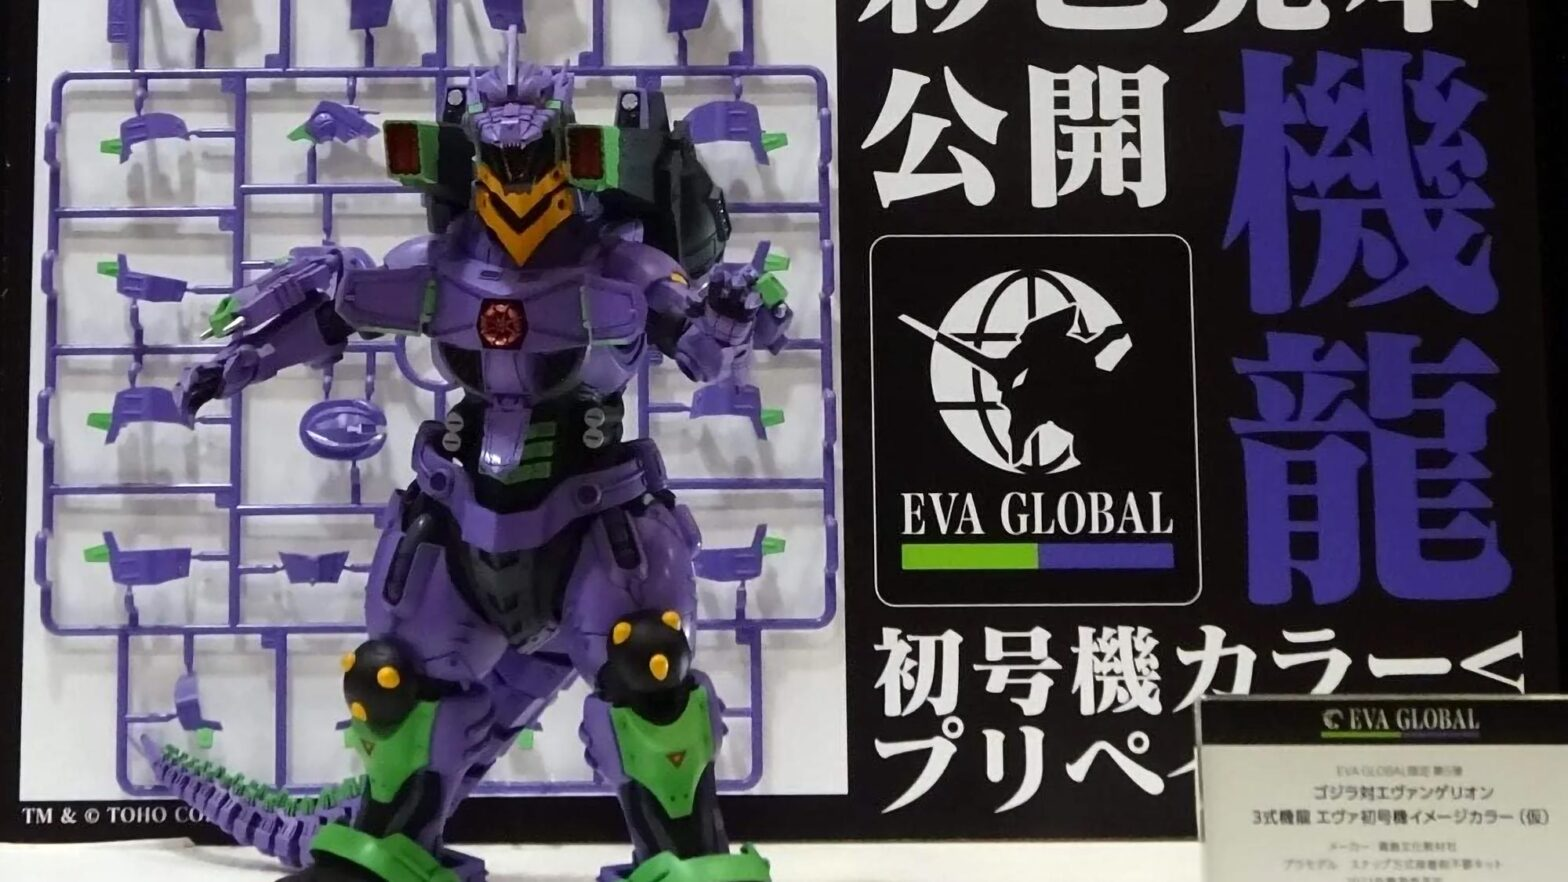 Aoshima Godzilla x Evangelion Unit-01 Model Kit